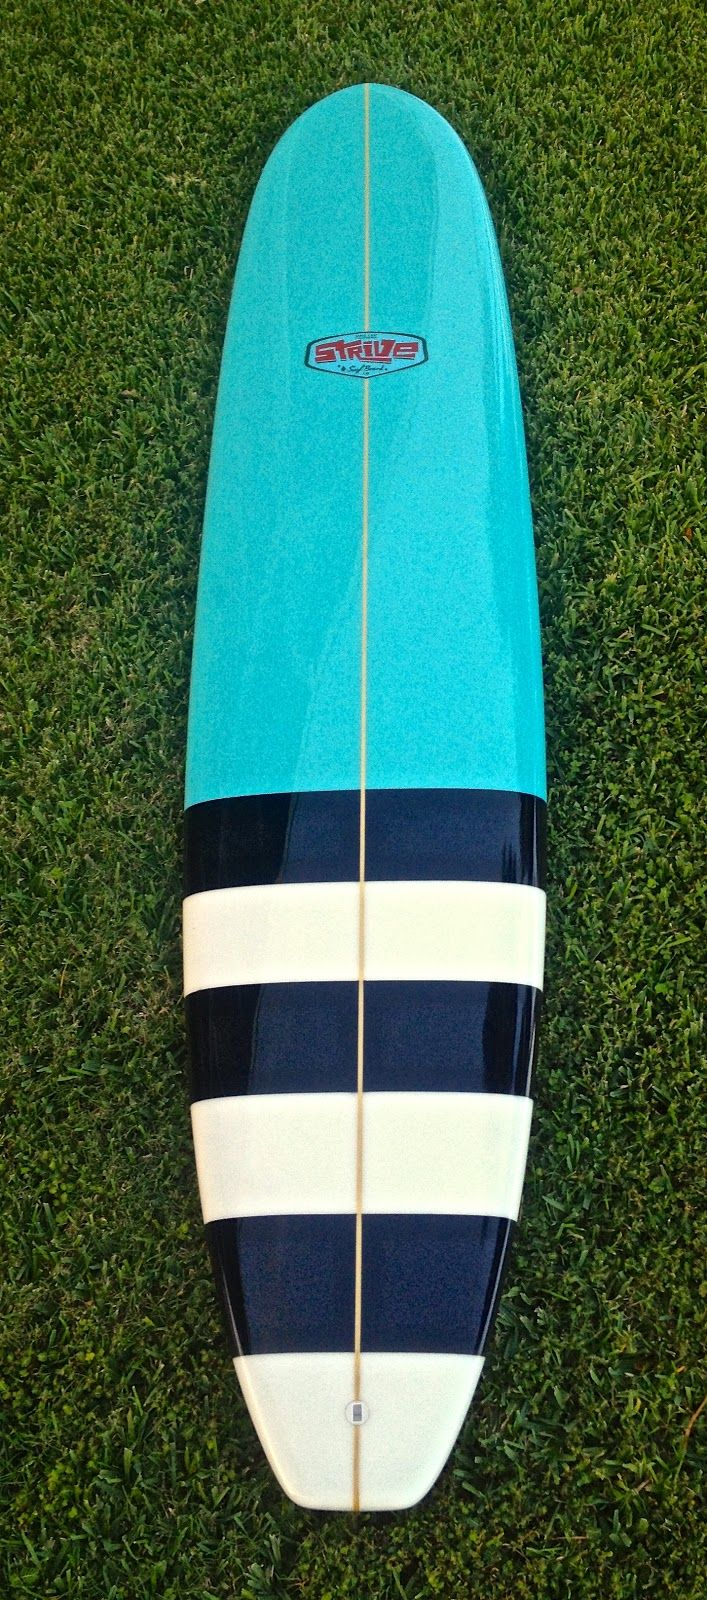 86 best surfboards images on pinterest live beach and colors strive surfboards girl with a surfboard amipublicfo Images